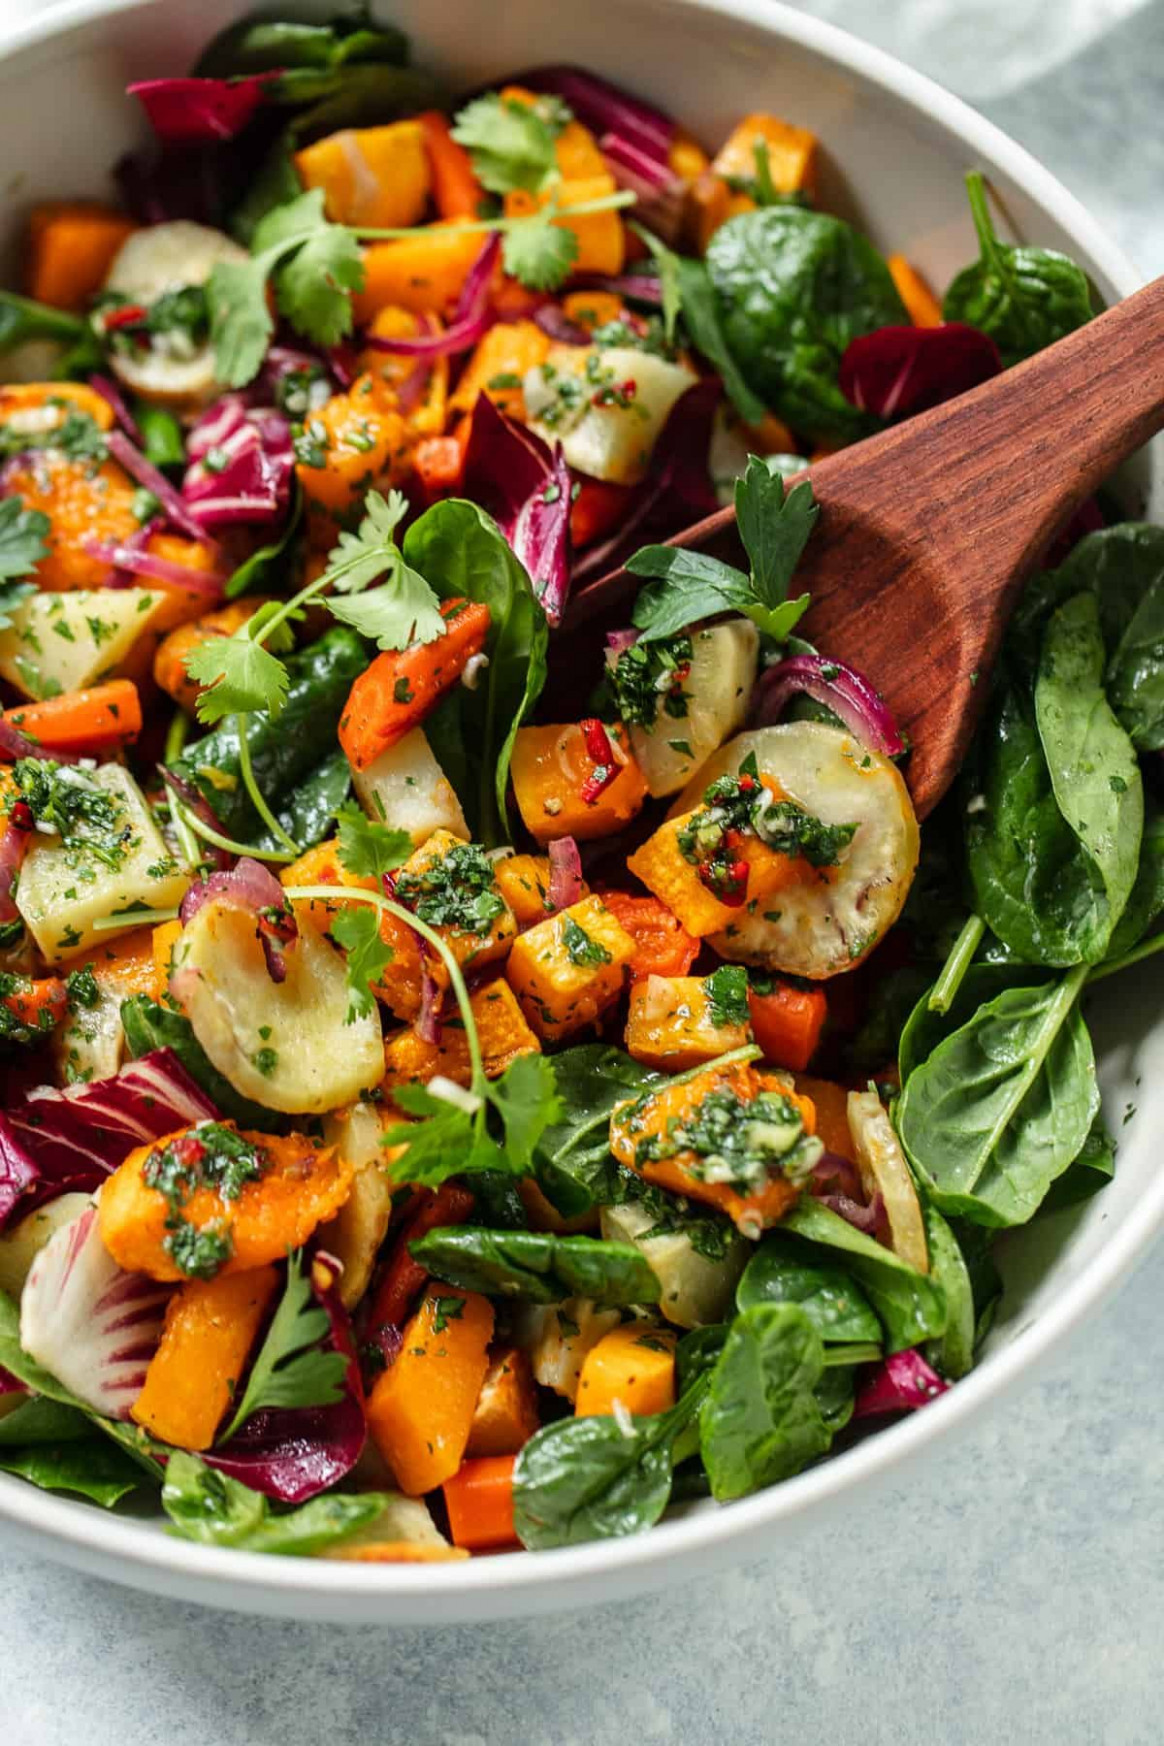 Root Vegetable Salad With Chimichurri - Warm Salad Recipes Vegetarian